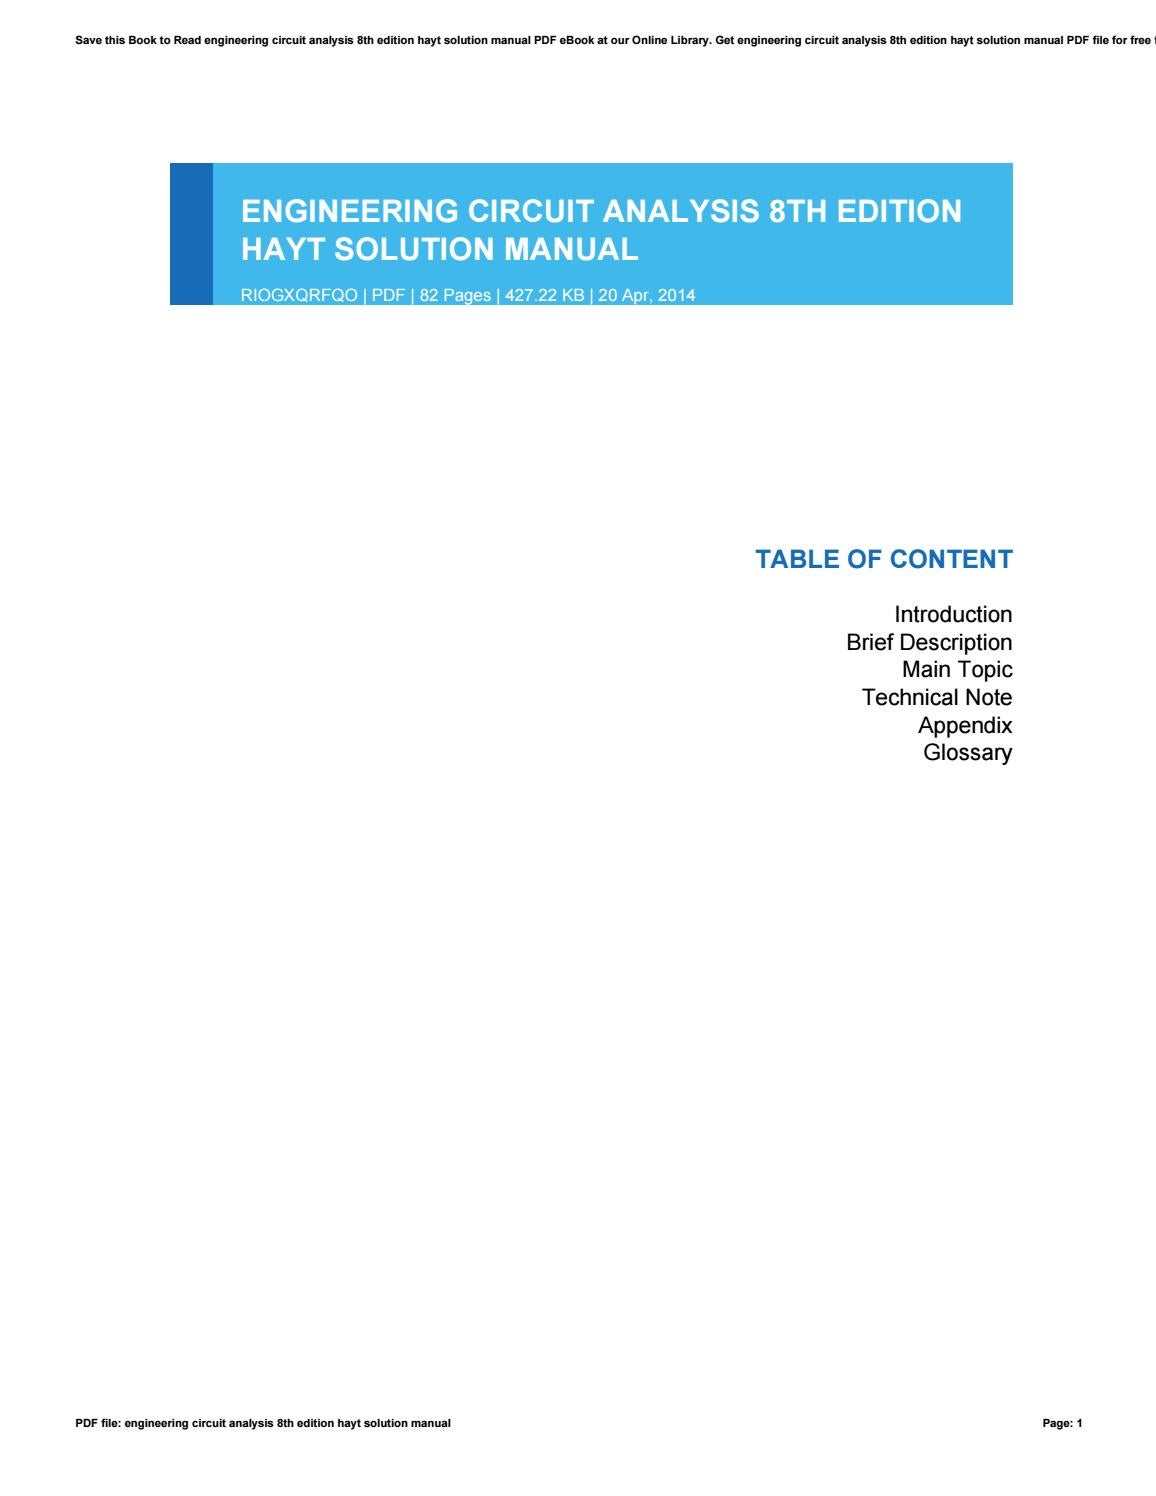 Engineering circuit analysis 8th edition hayt solution manual by  IreneEarly2648 - issuu